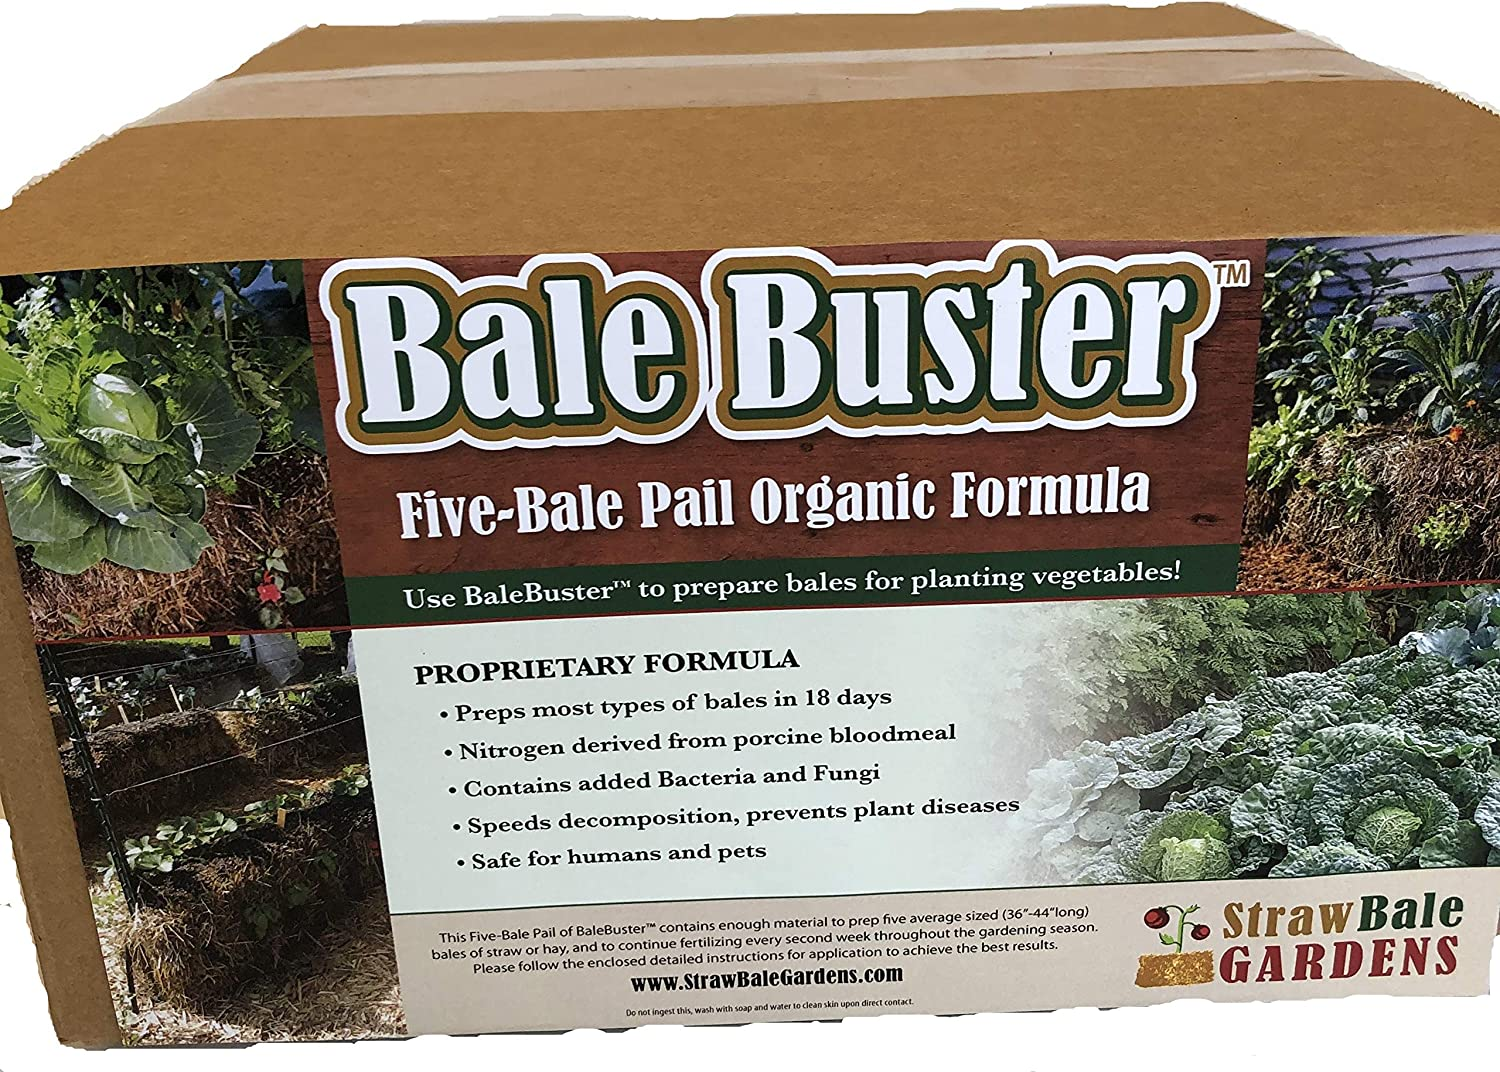 BaleBuster Straw Bale Gardening Five Bale Preparation kit with 100% Organic Formulation Blood Meal 18 lbs Includes Bacteria and Fungi Spores